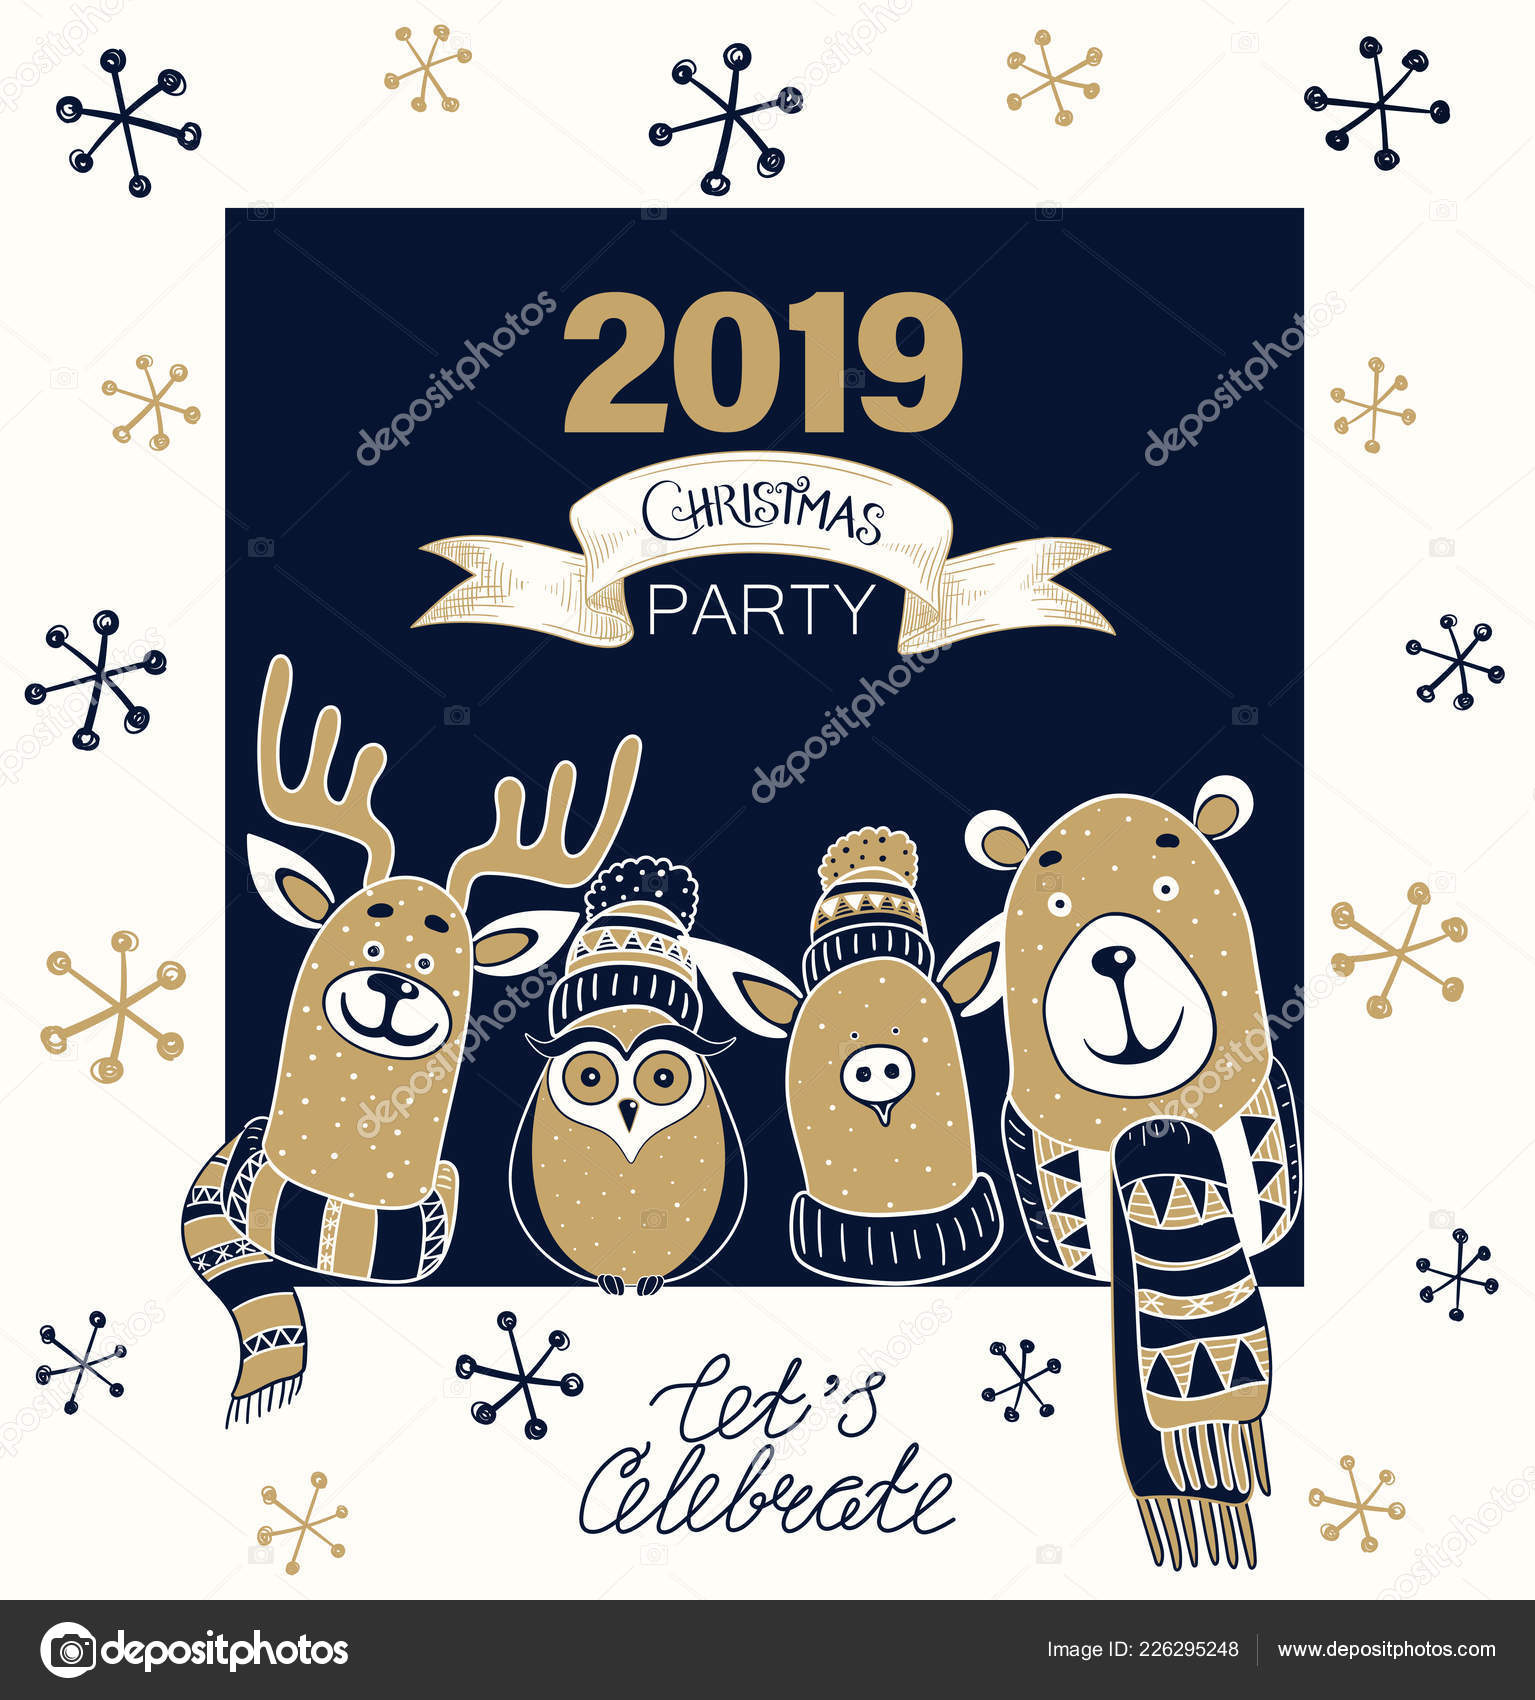 Christmas Party 2019 Clipart.Christmas Party 2019 Poster Or Invitation With Cute Cartoon